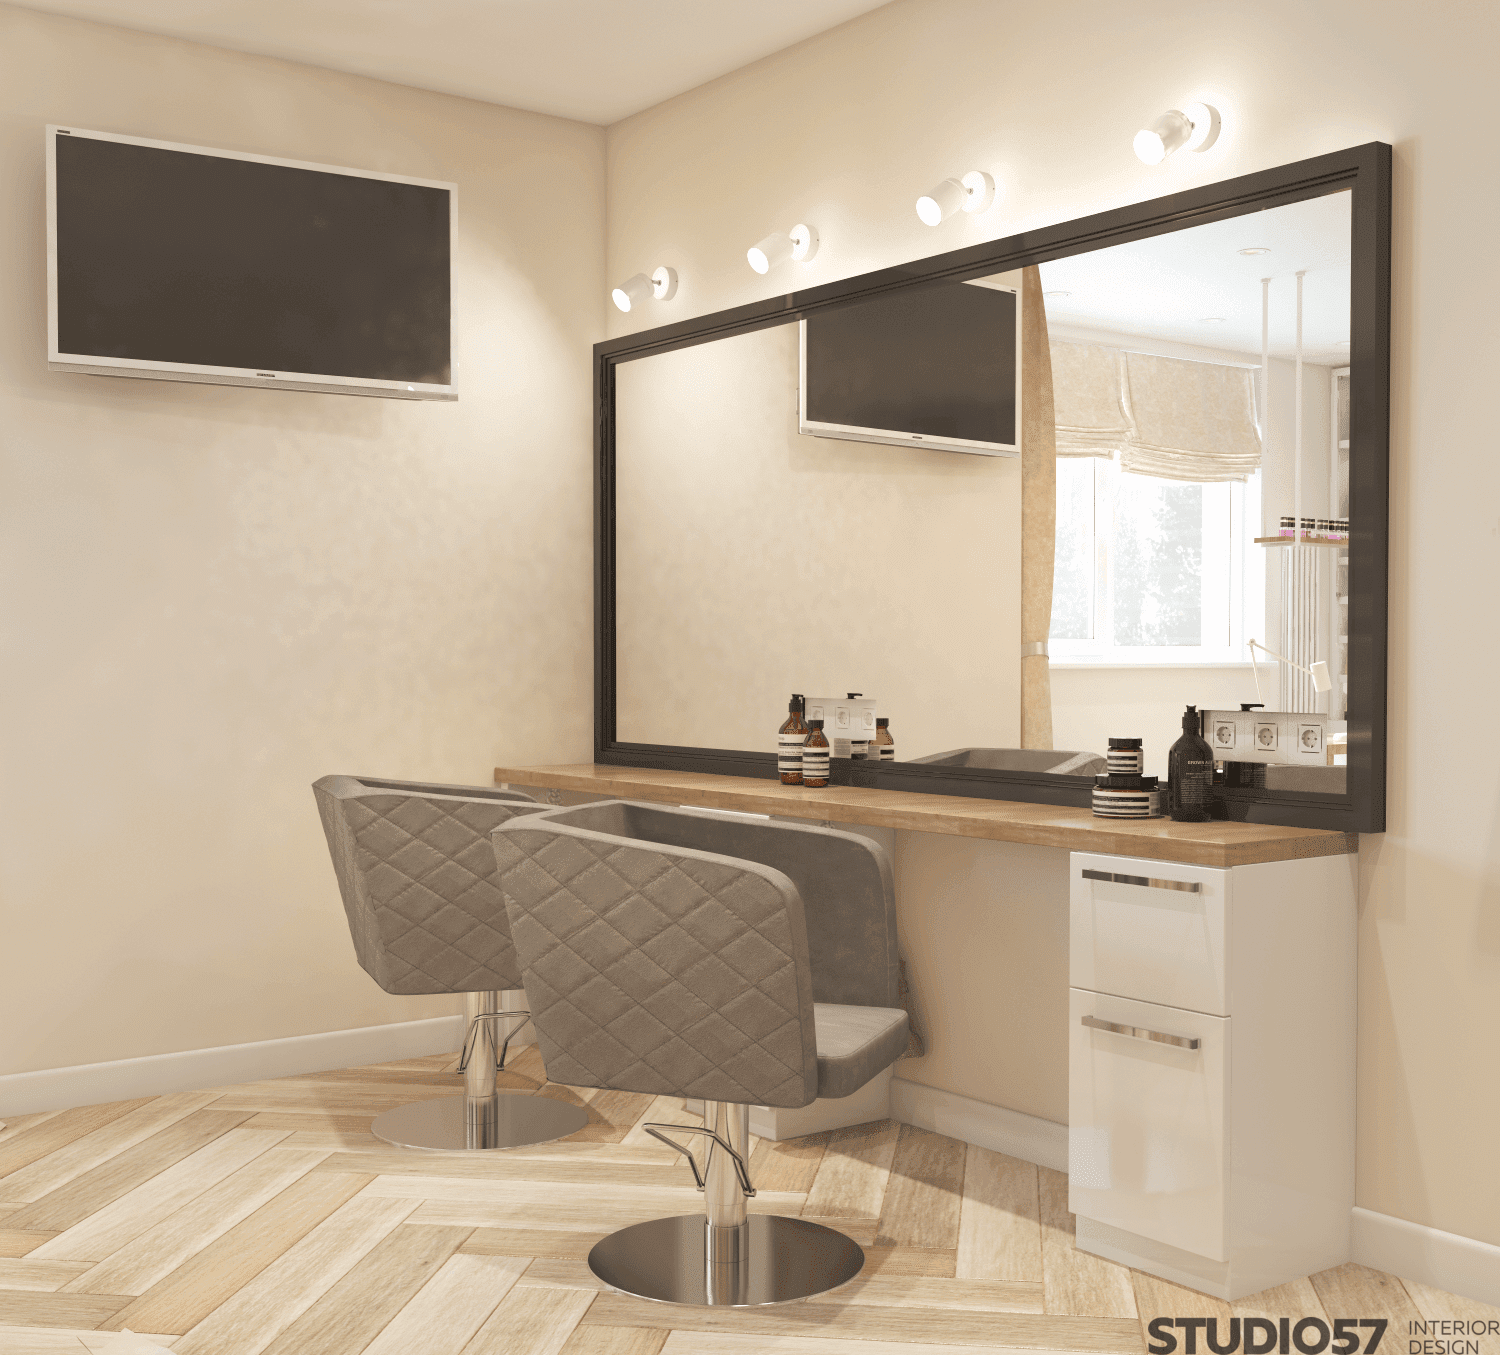 Design project of a small beauty salon